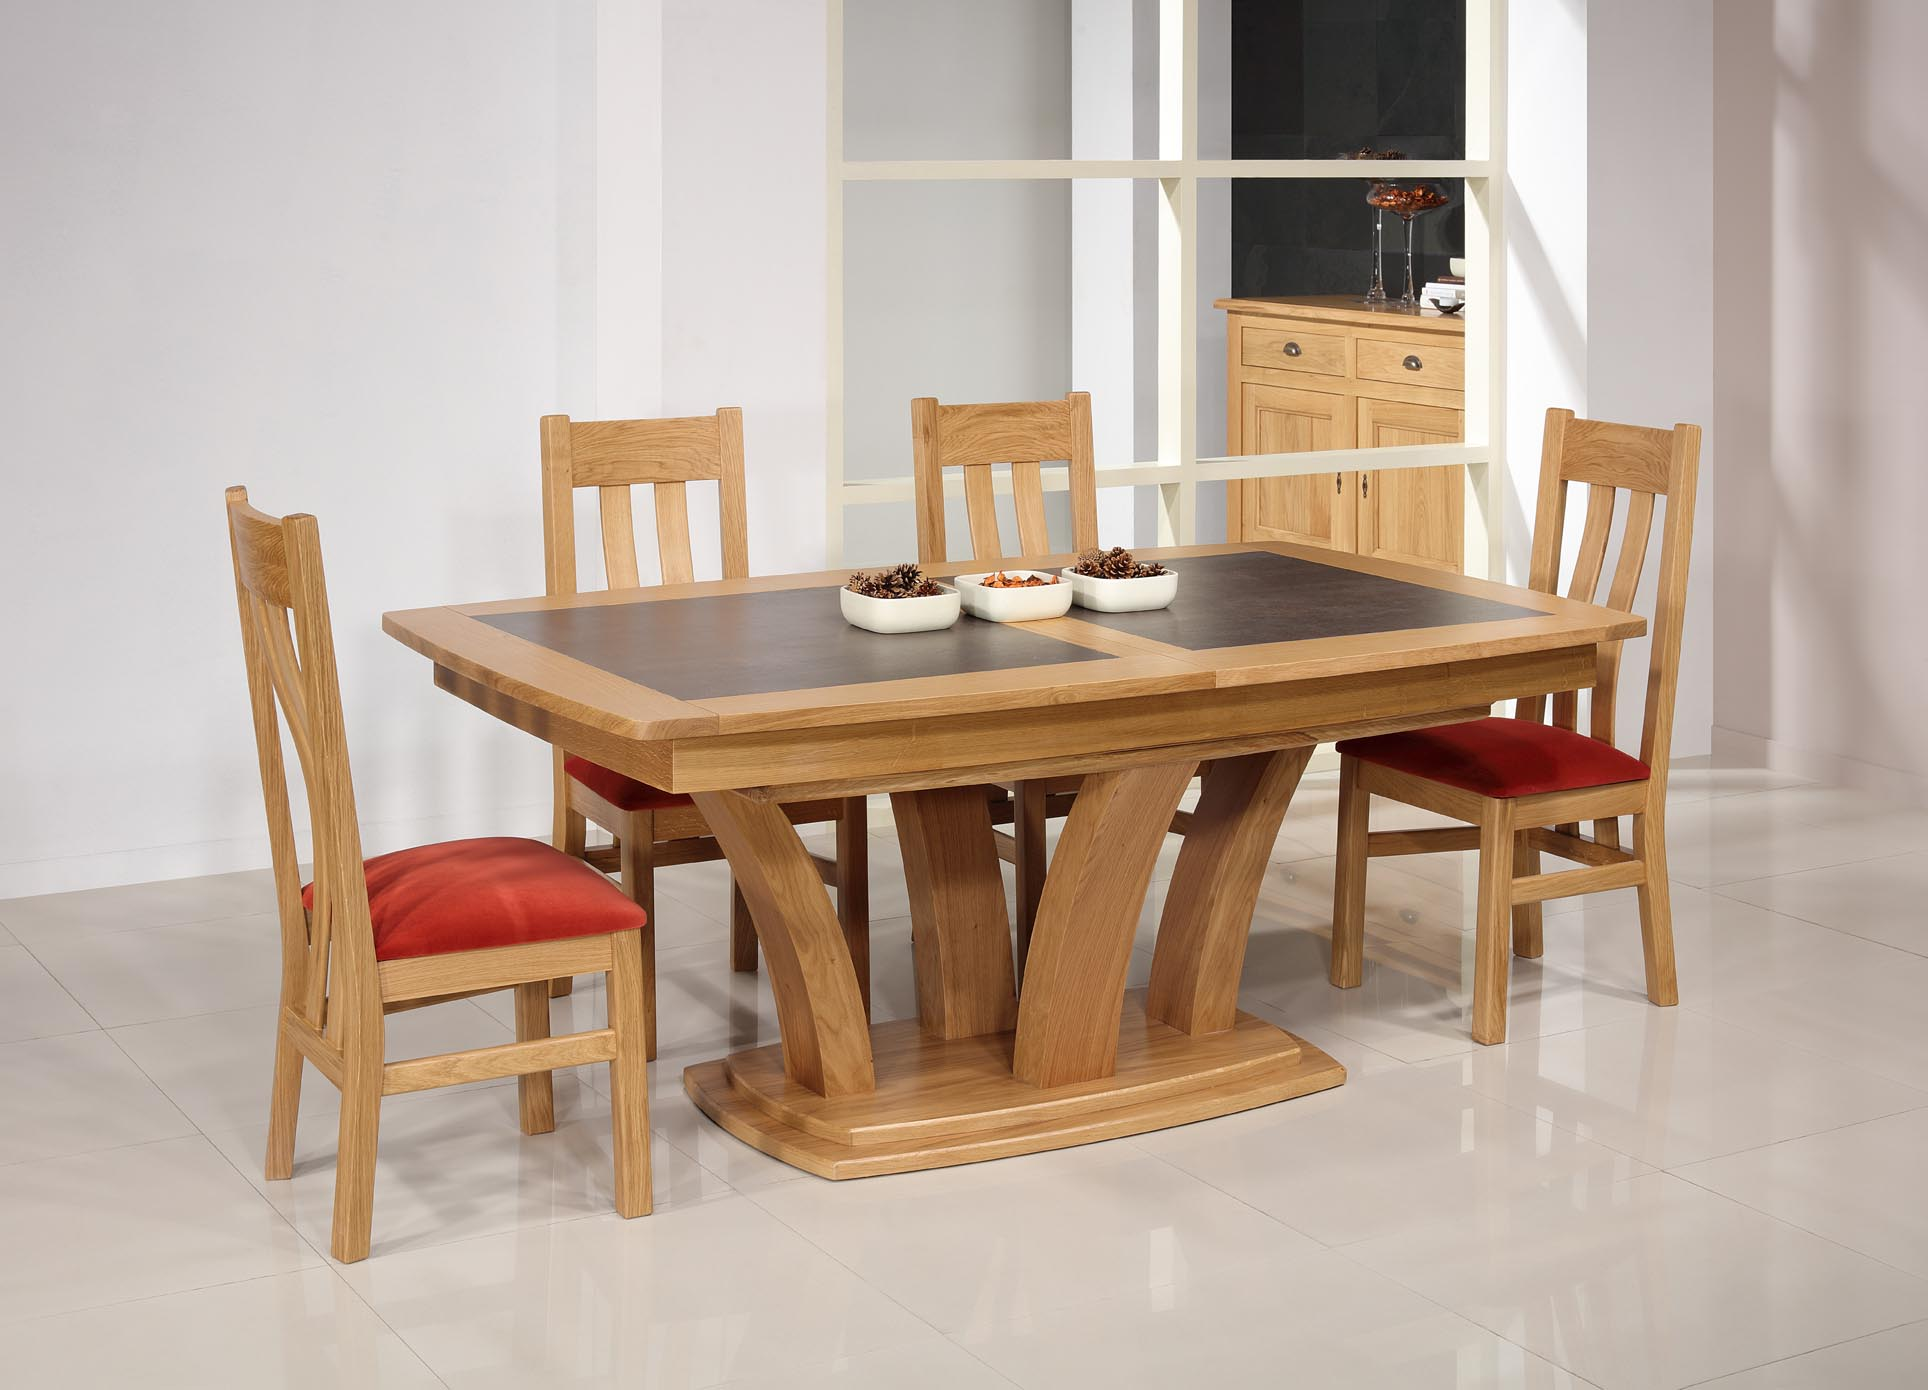 Table De Repas Contemporaine 180x110 Realisee En Merisier Massif